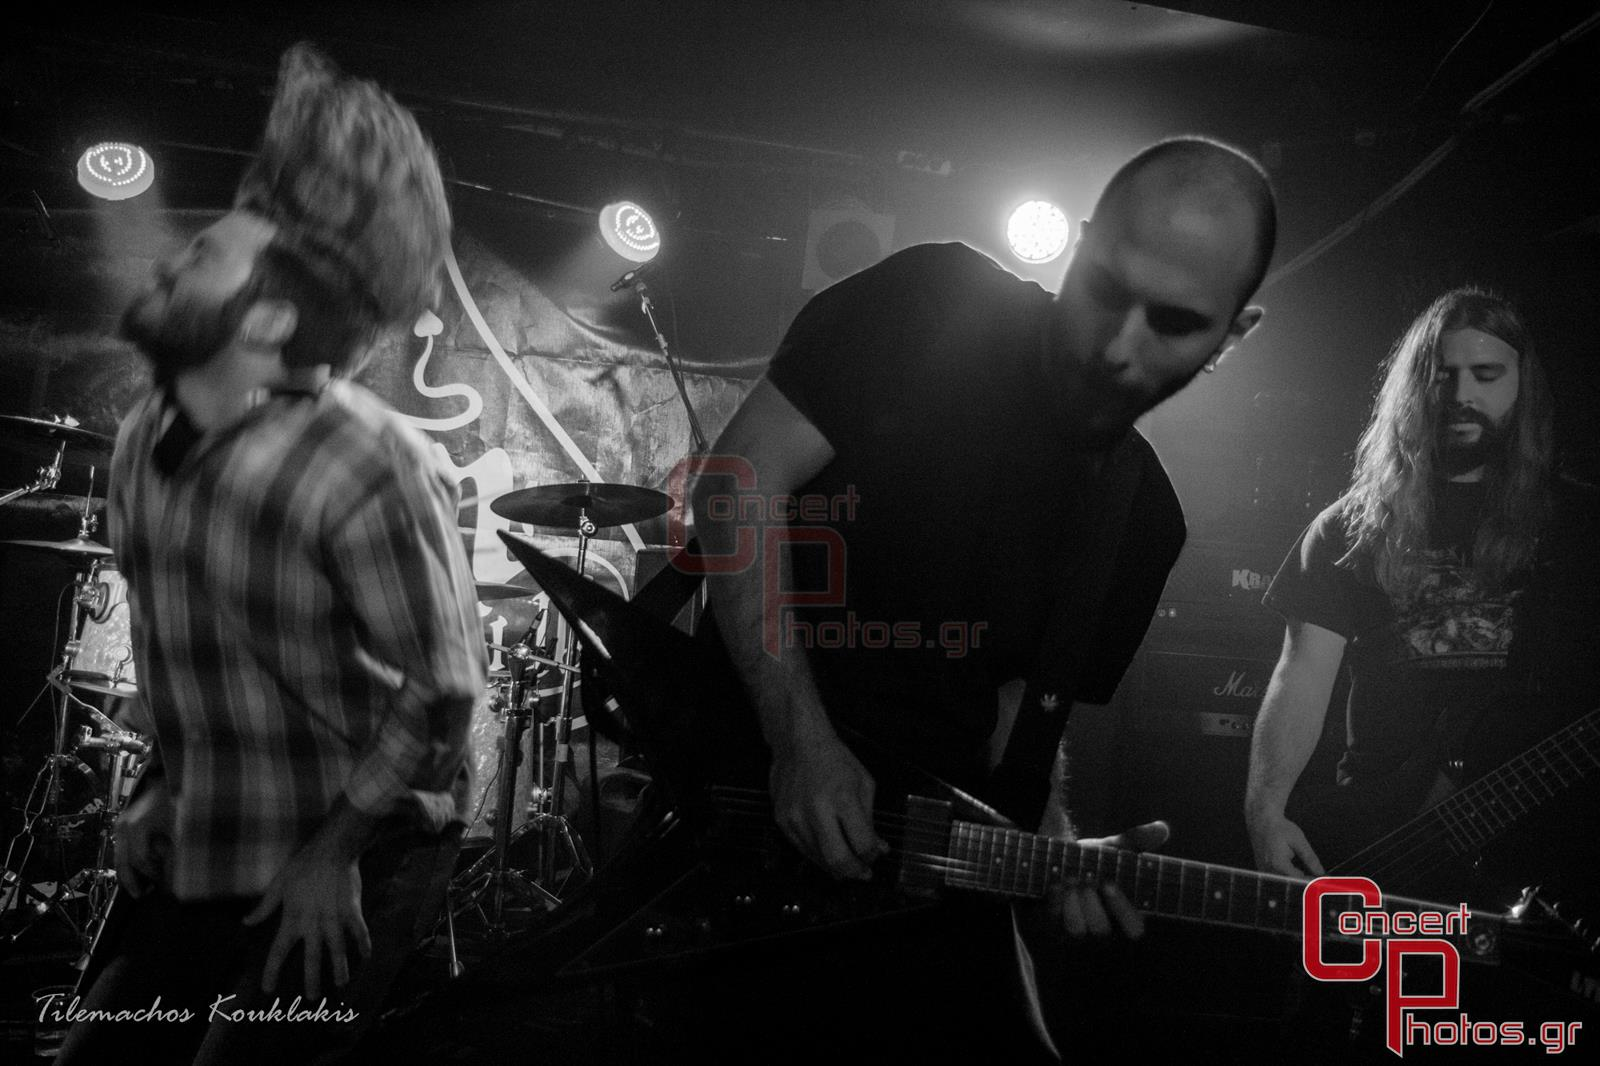 Nightstalker-Nightstalker AN Club photographer:  - concertphotos_-5